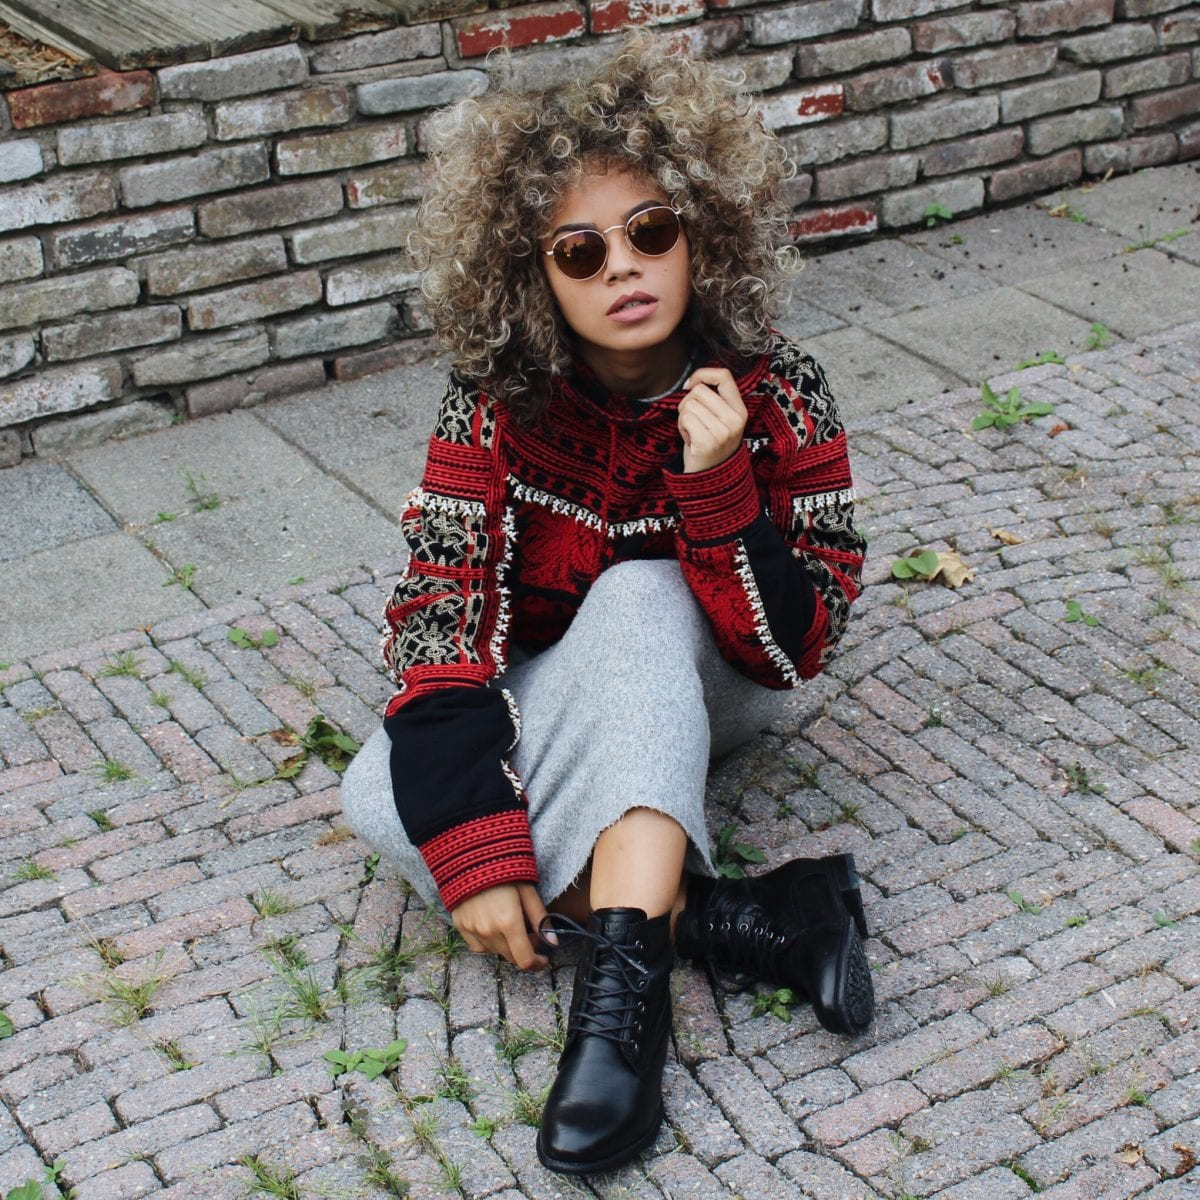 the comfi Blackstone boots you need this winter